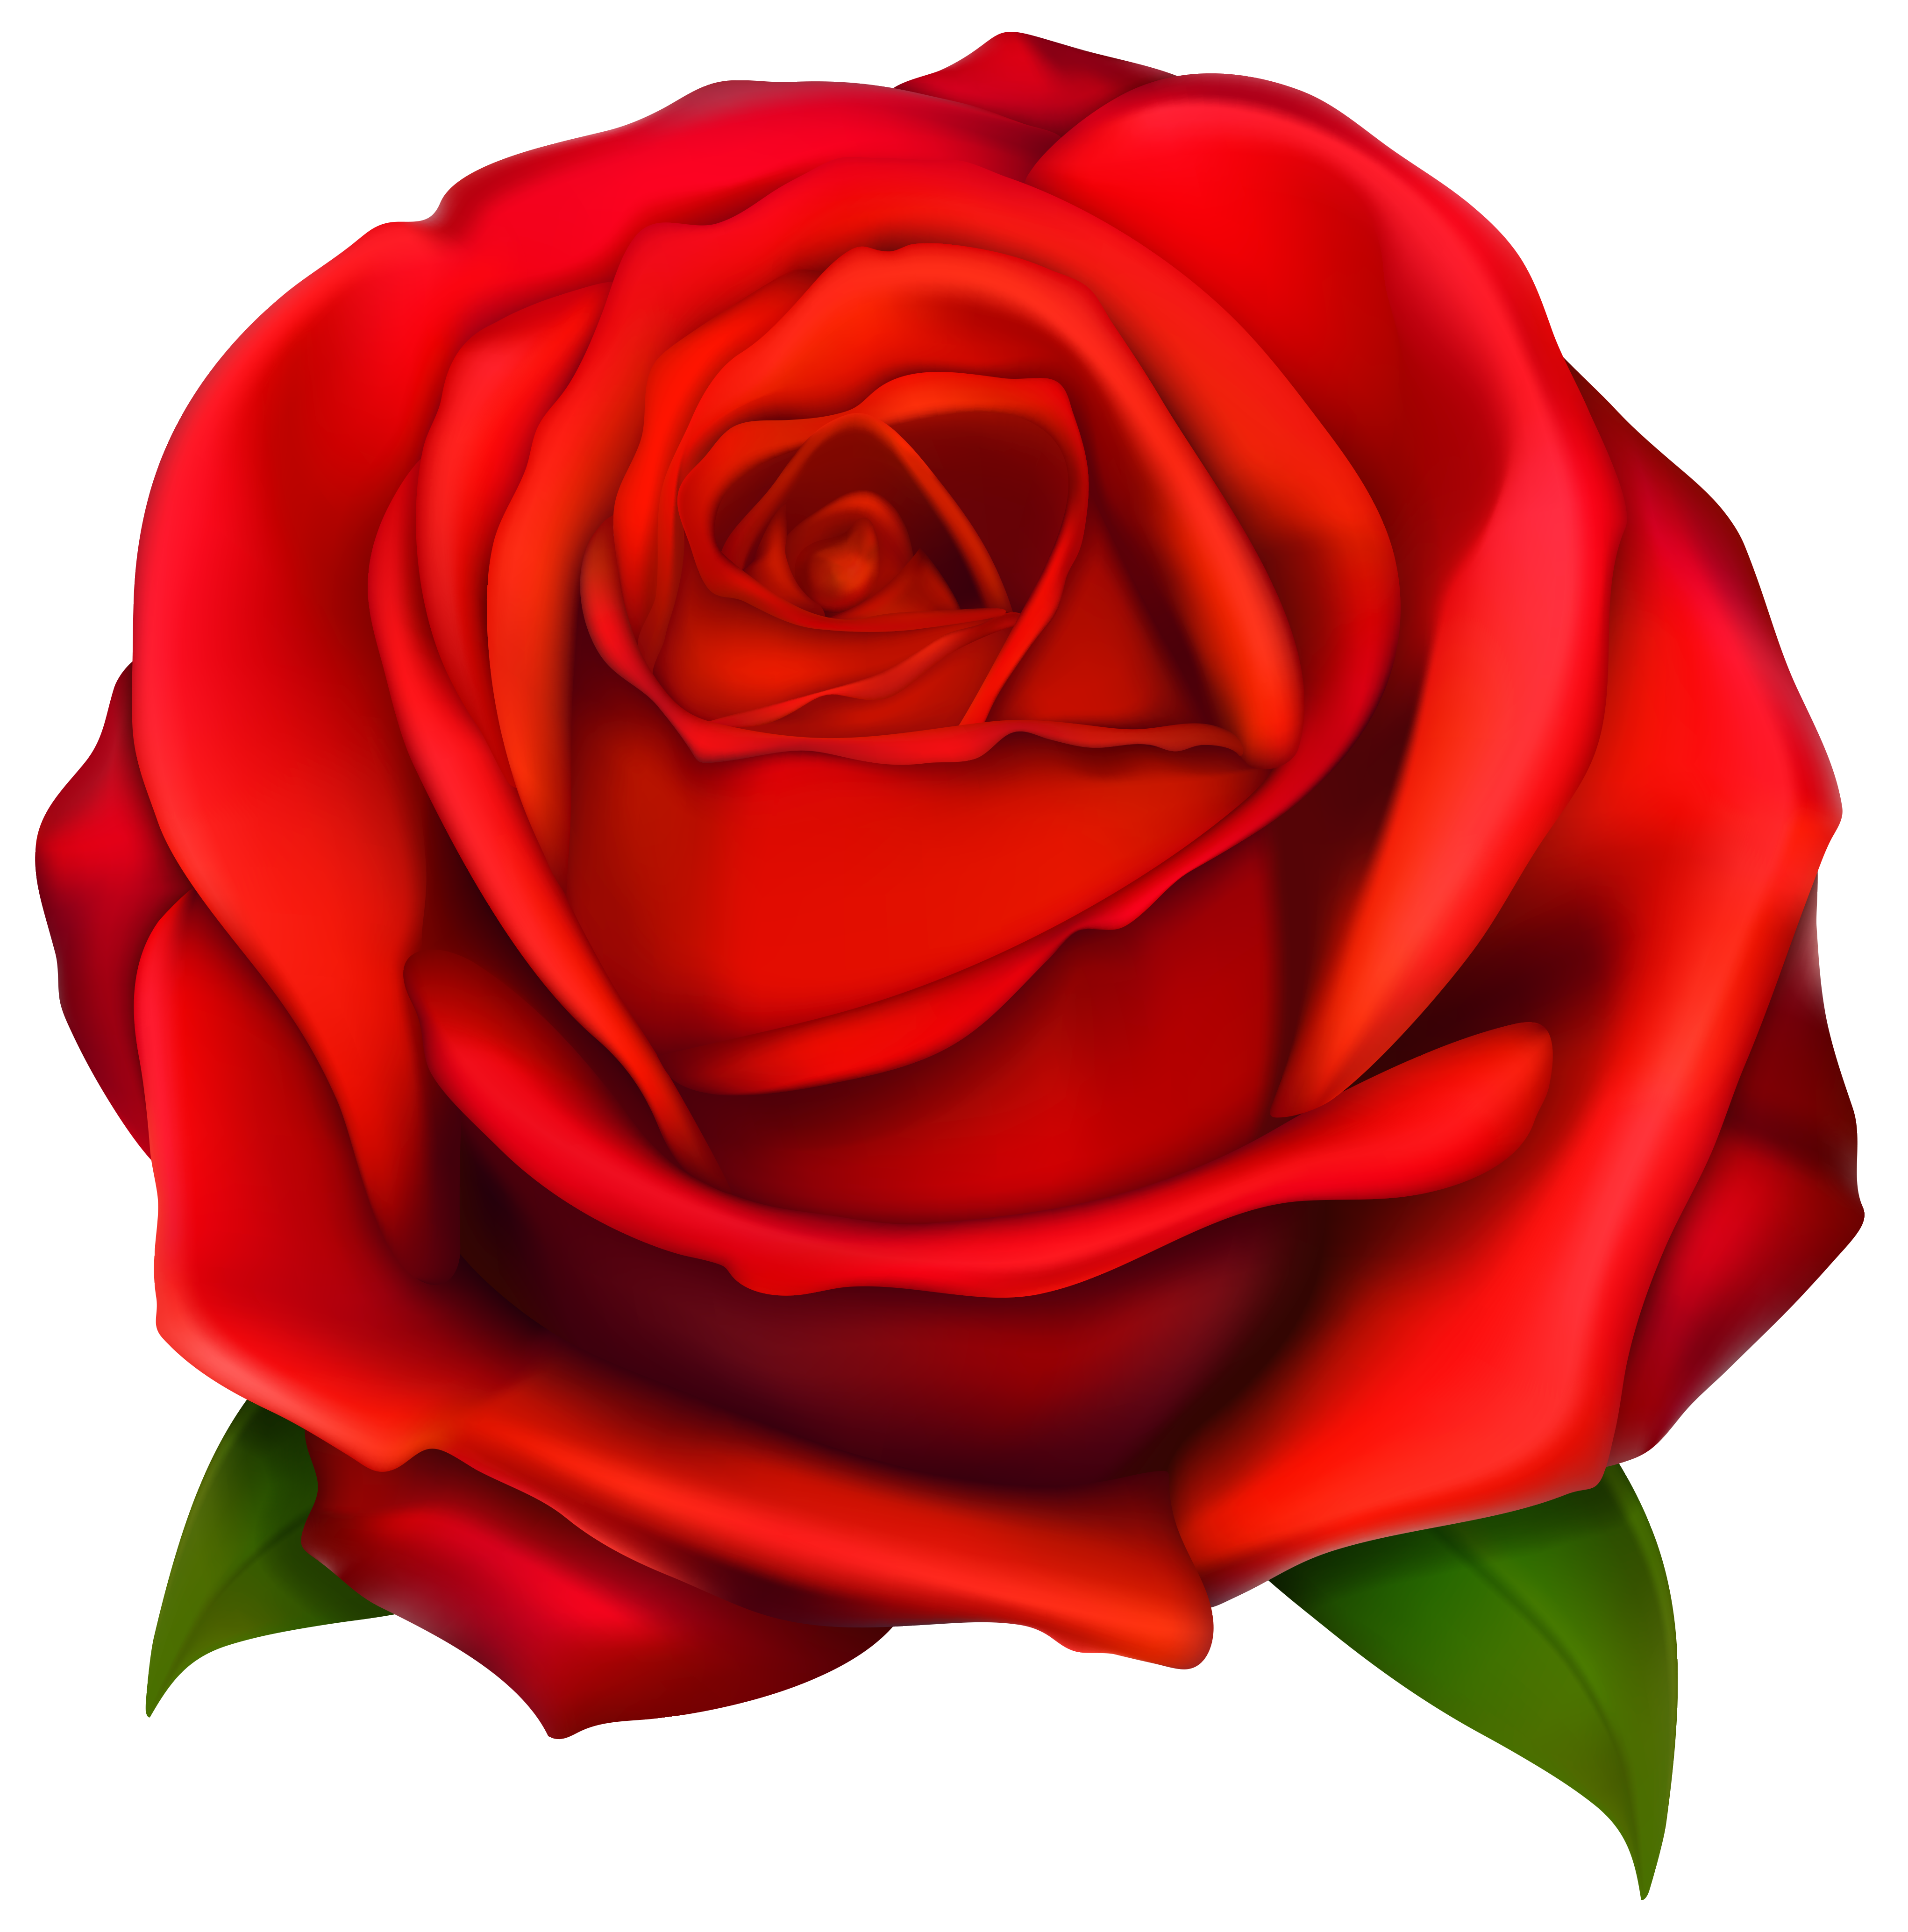 4084x4136 Image Of Clip Art Red Rose 2 Red Roses Clip Art Images Free